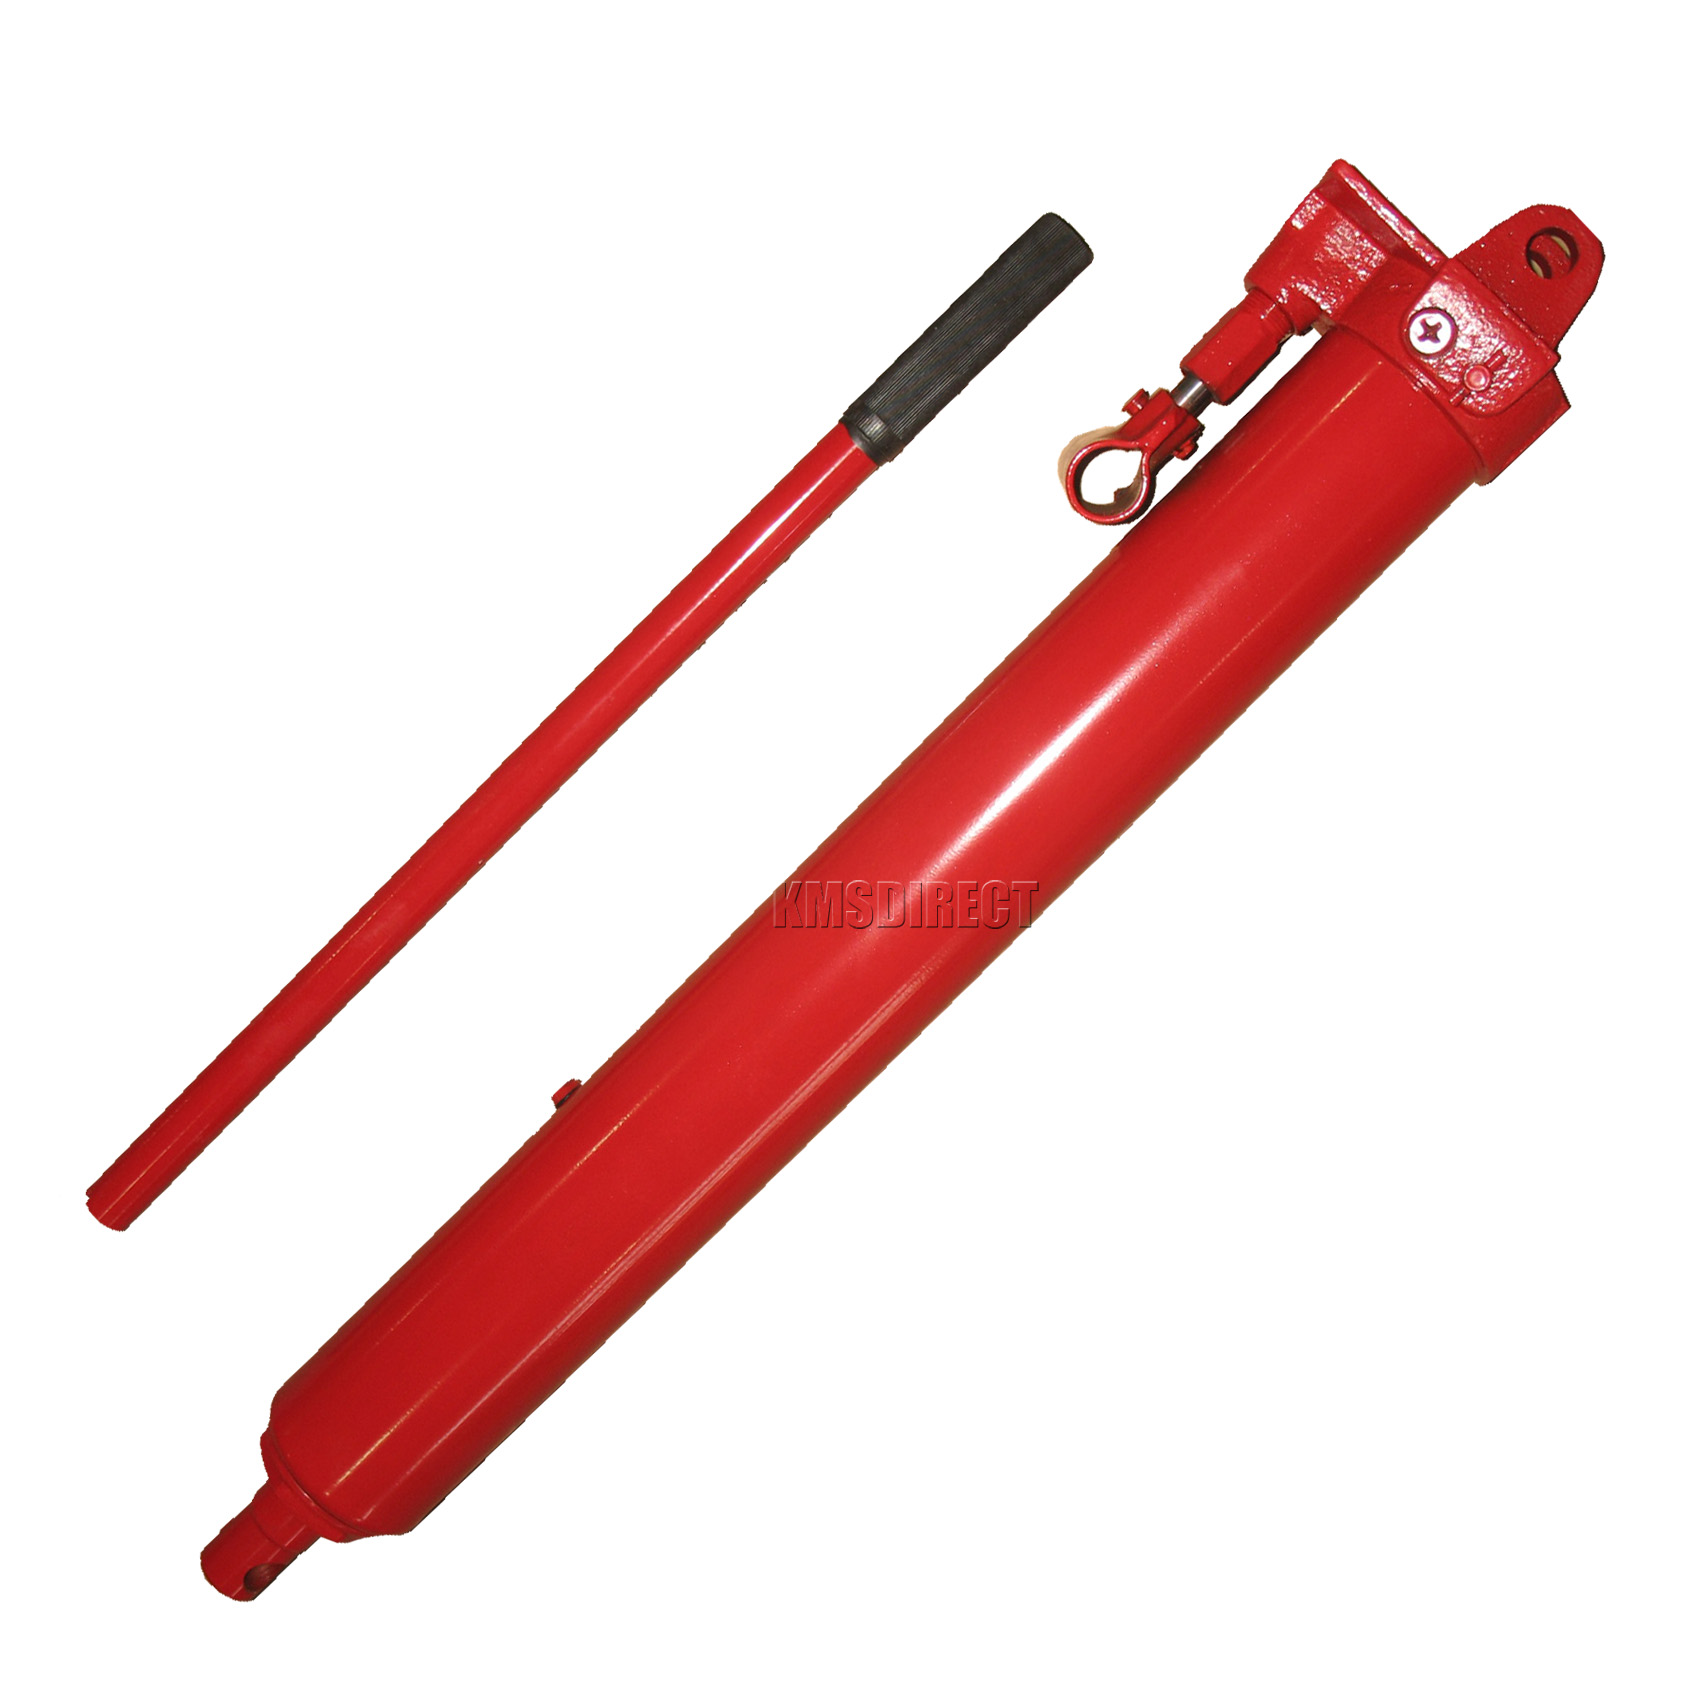 Crane Hydraulic Jack : Replacement jack for ton tonne engine crane hydraulic